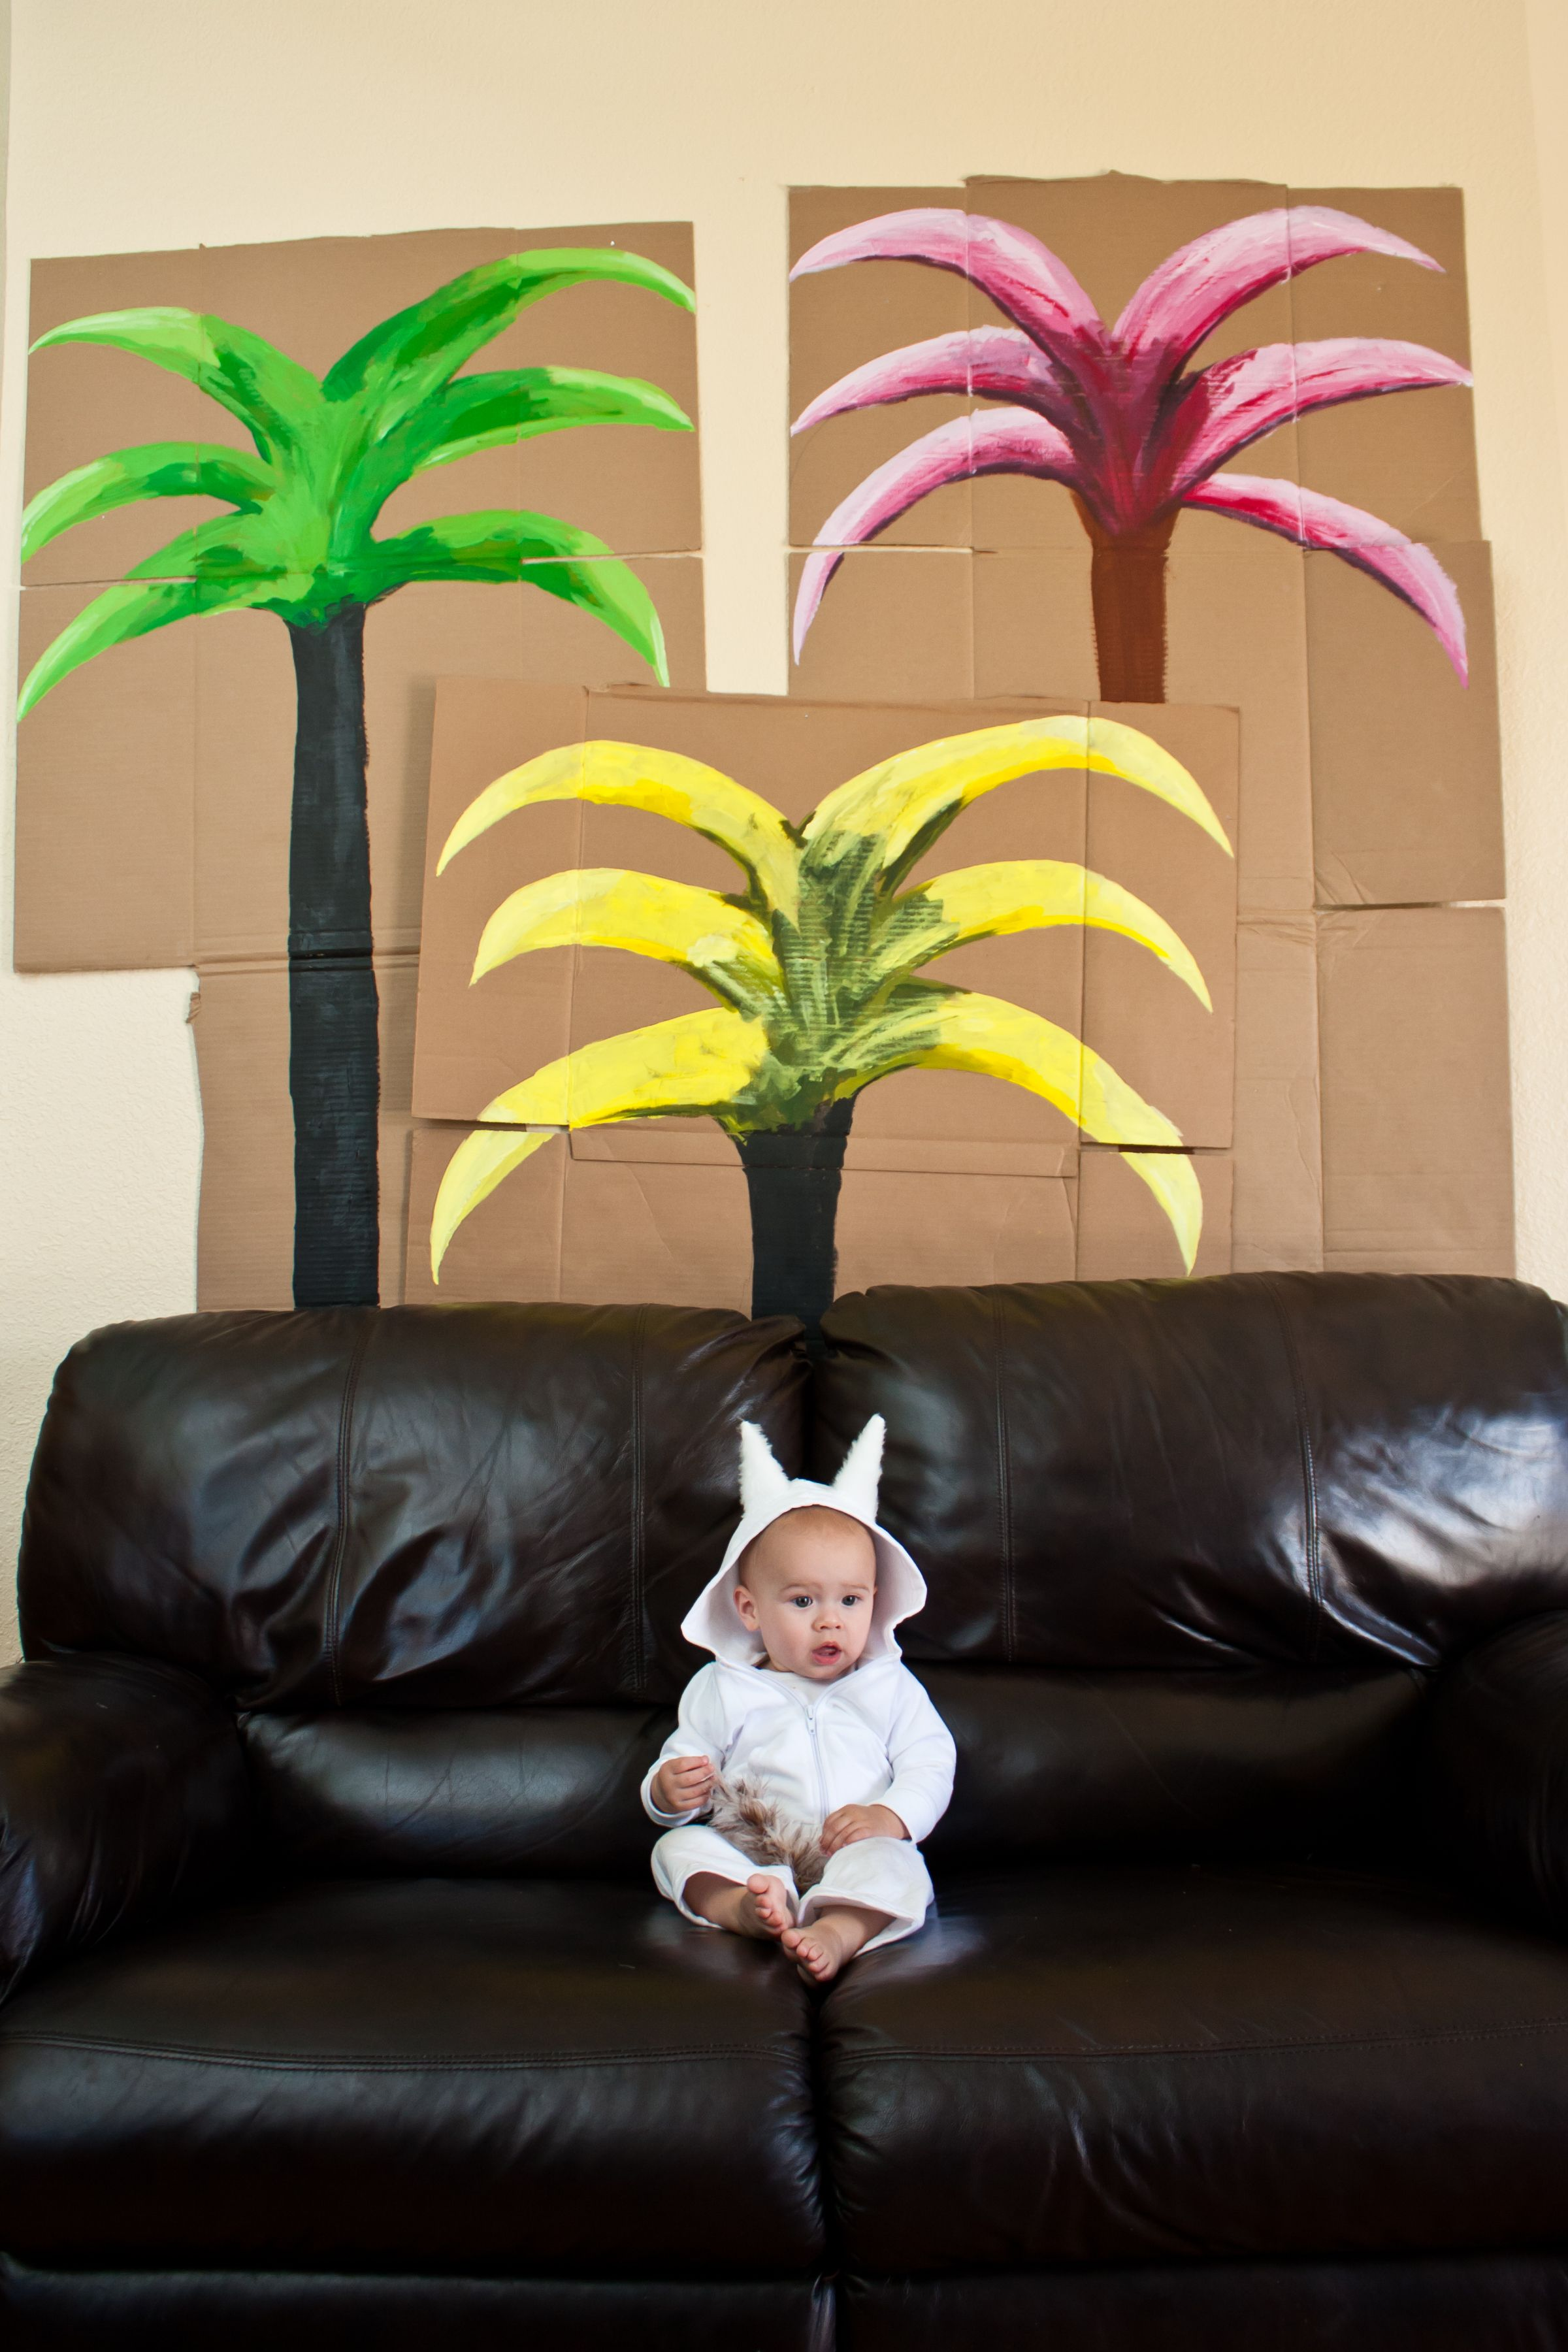 b8b7a857c My son s first birthday party. Where the Wild Things Are. The boxes are  opened up and trees painted on. The trees covered all the wall so it looked  like you ...